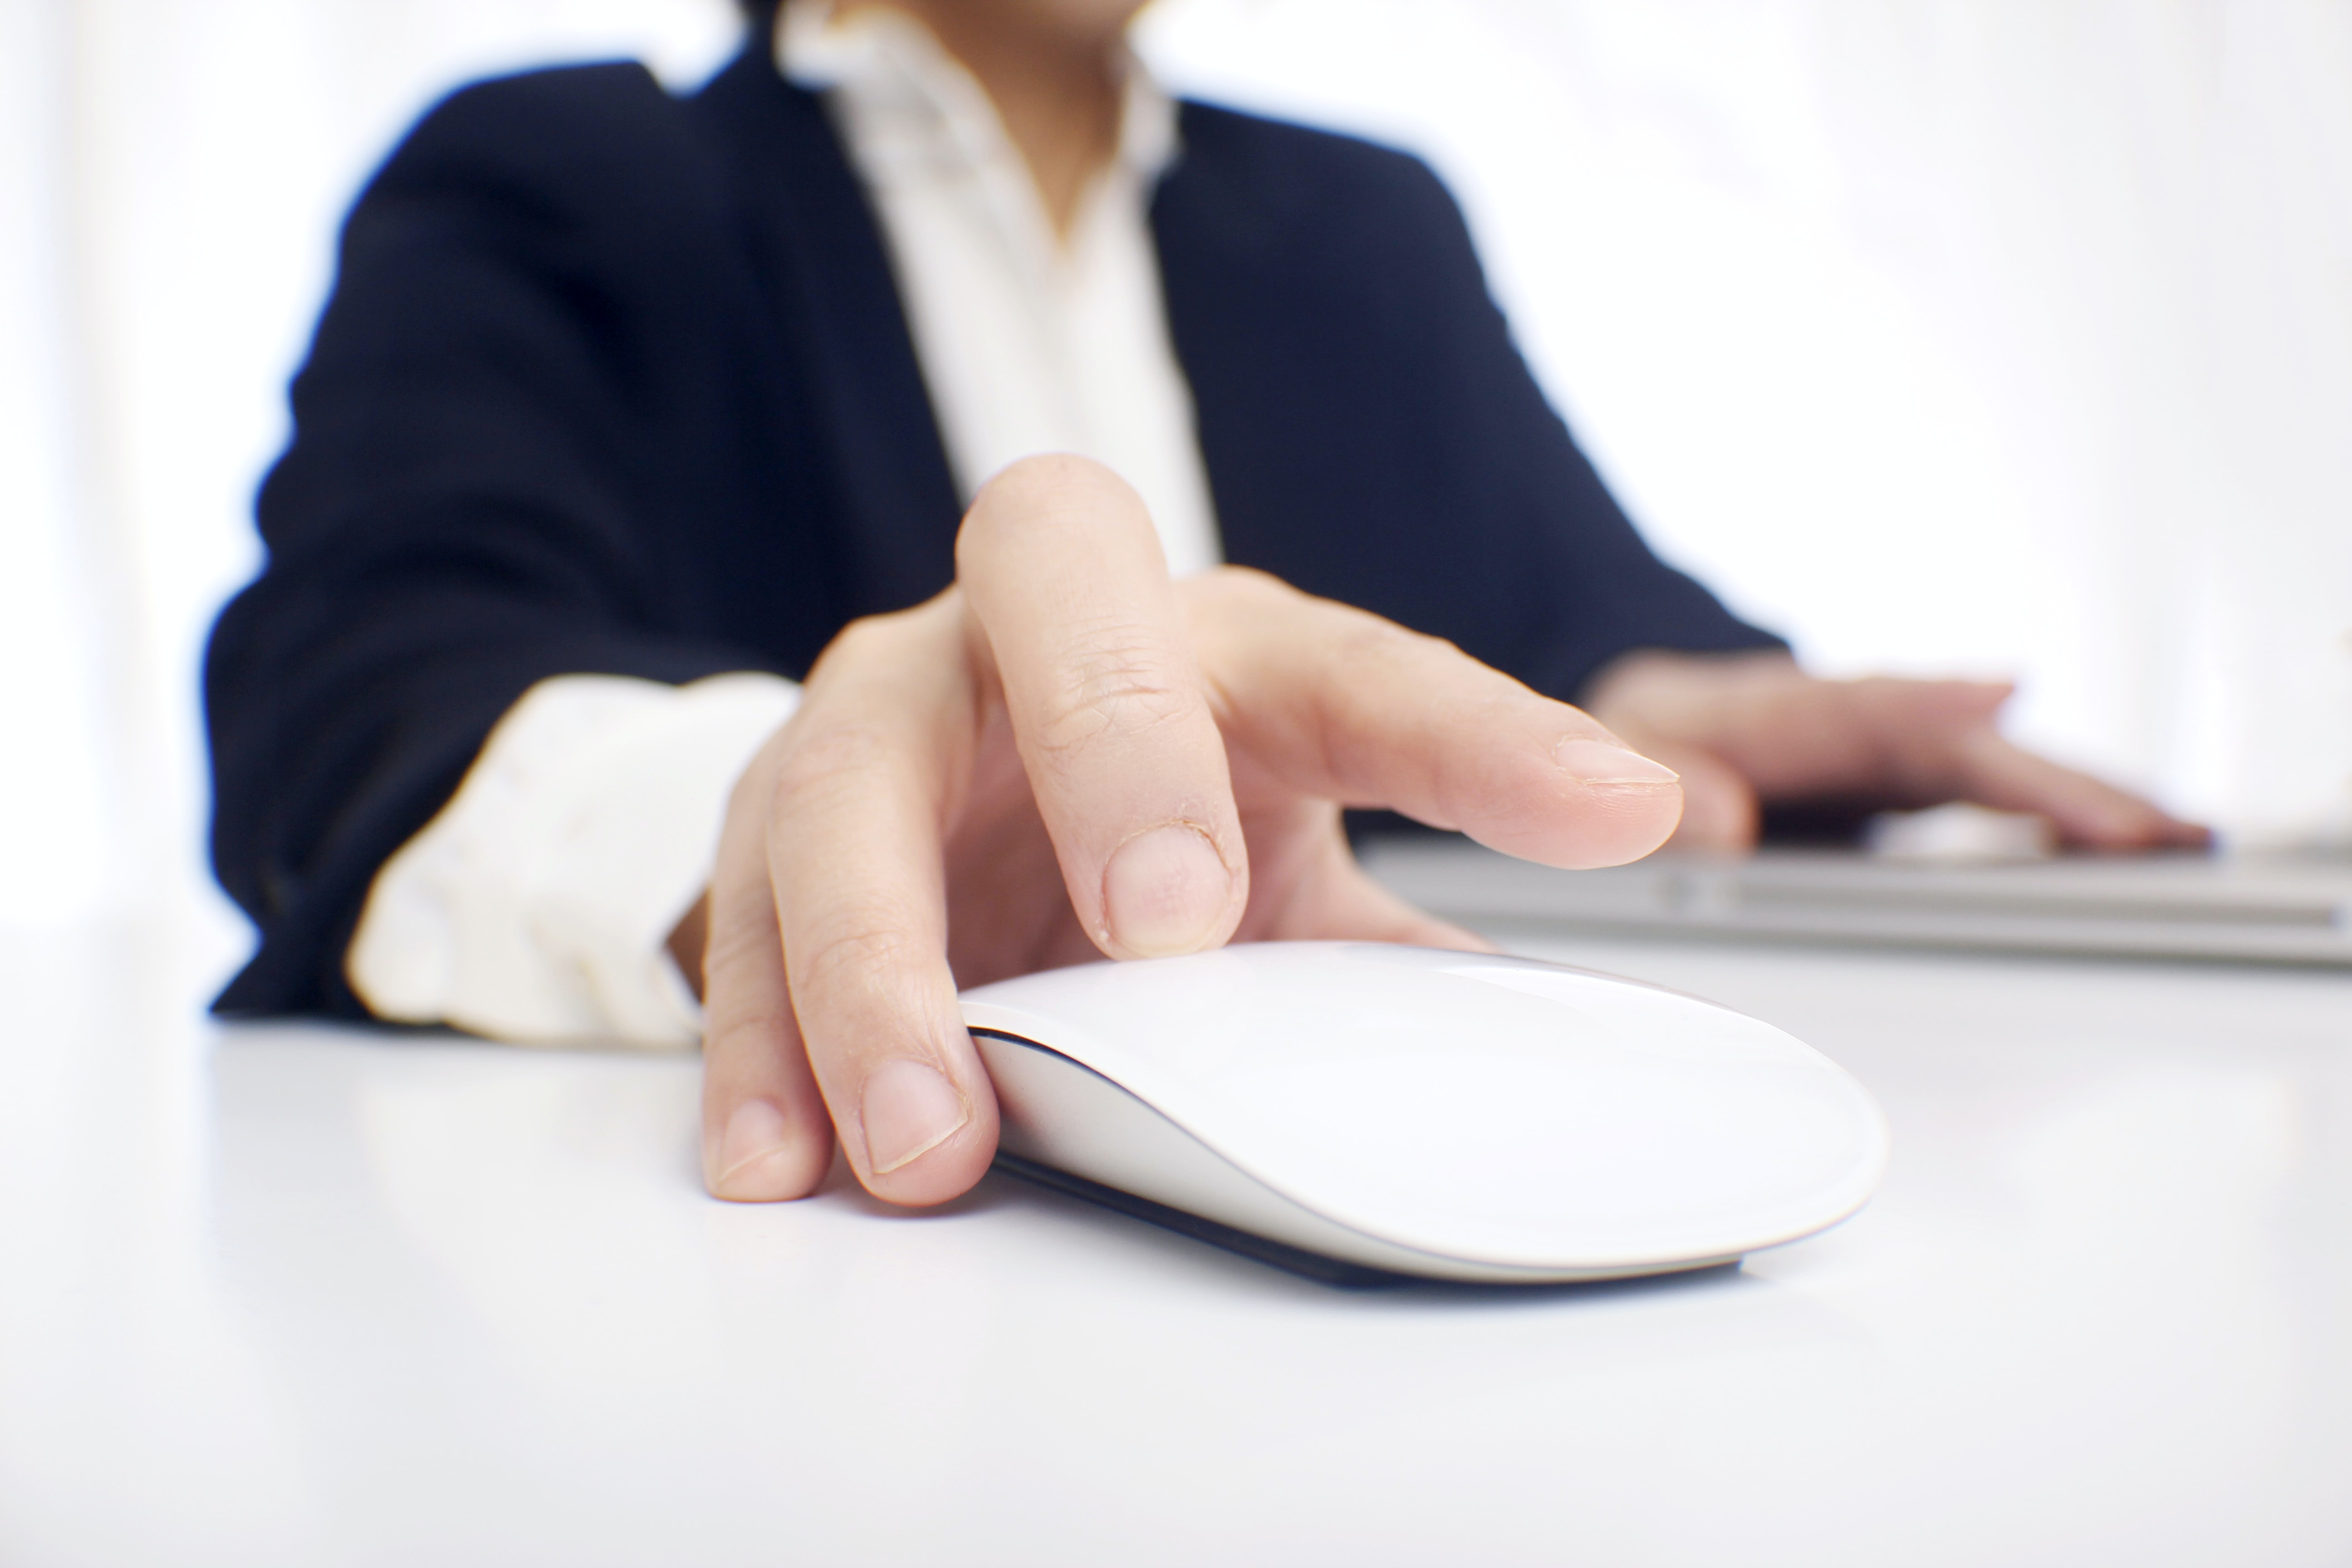 person using white Apple Magic mouse on top of table